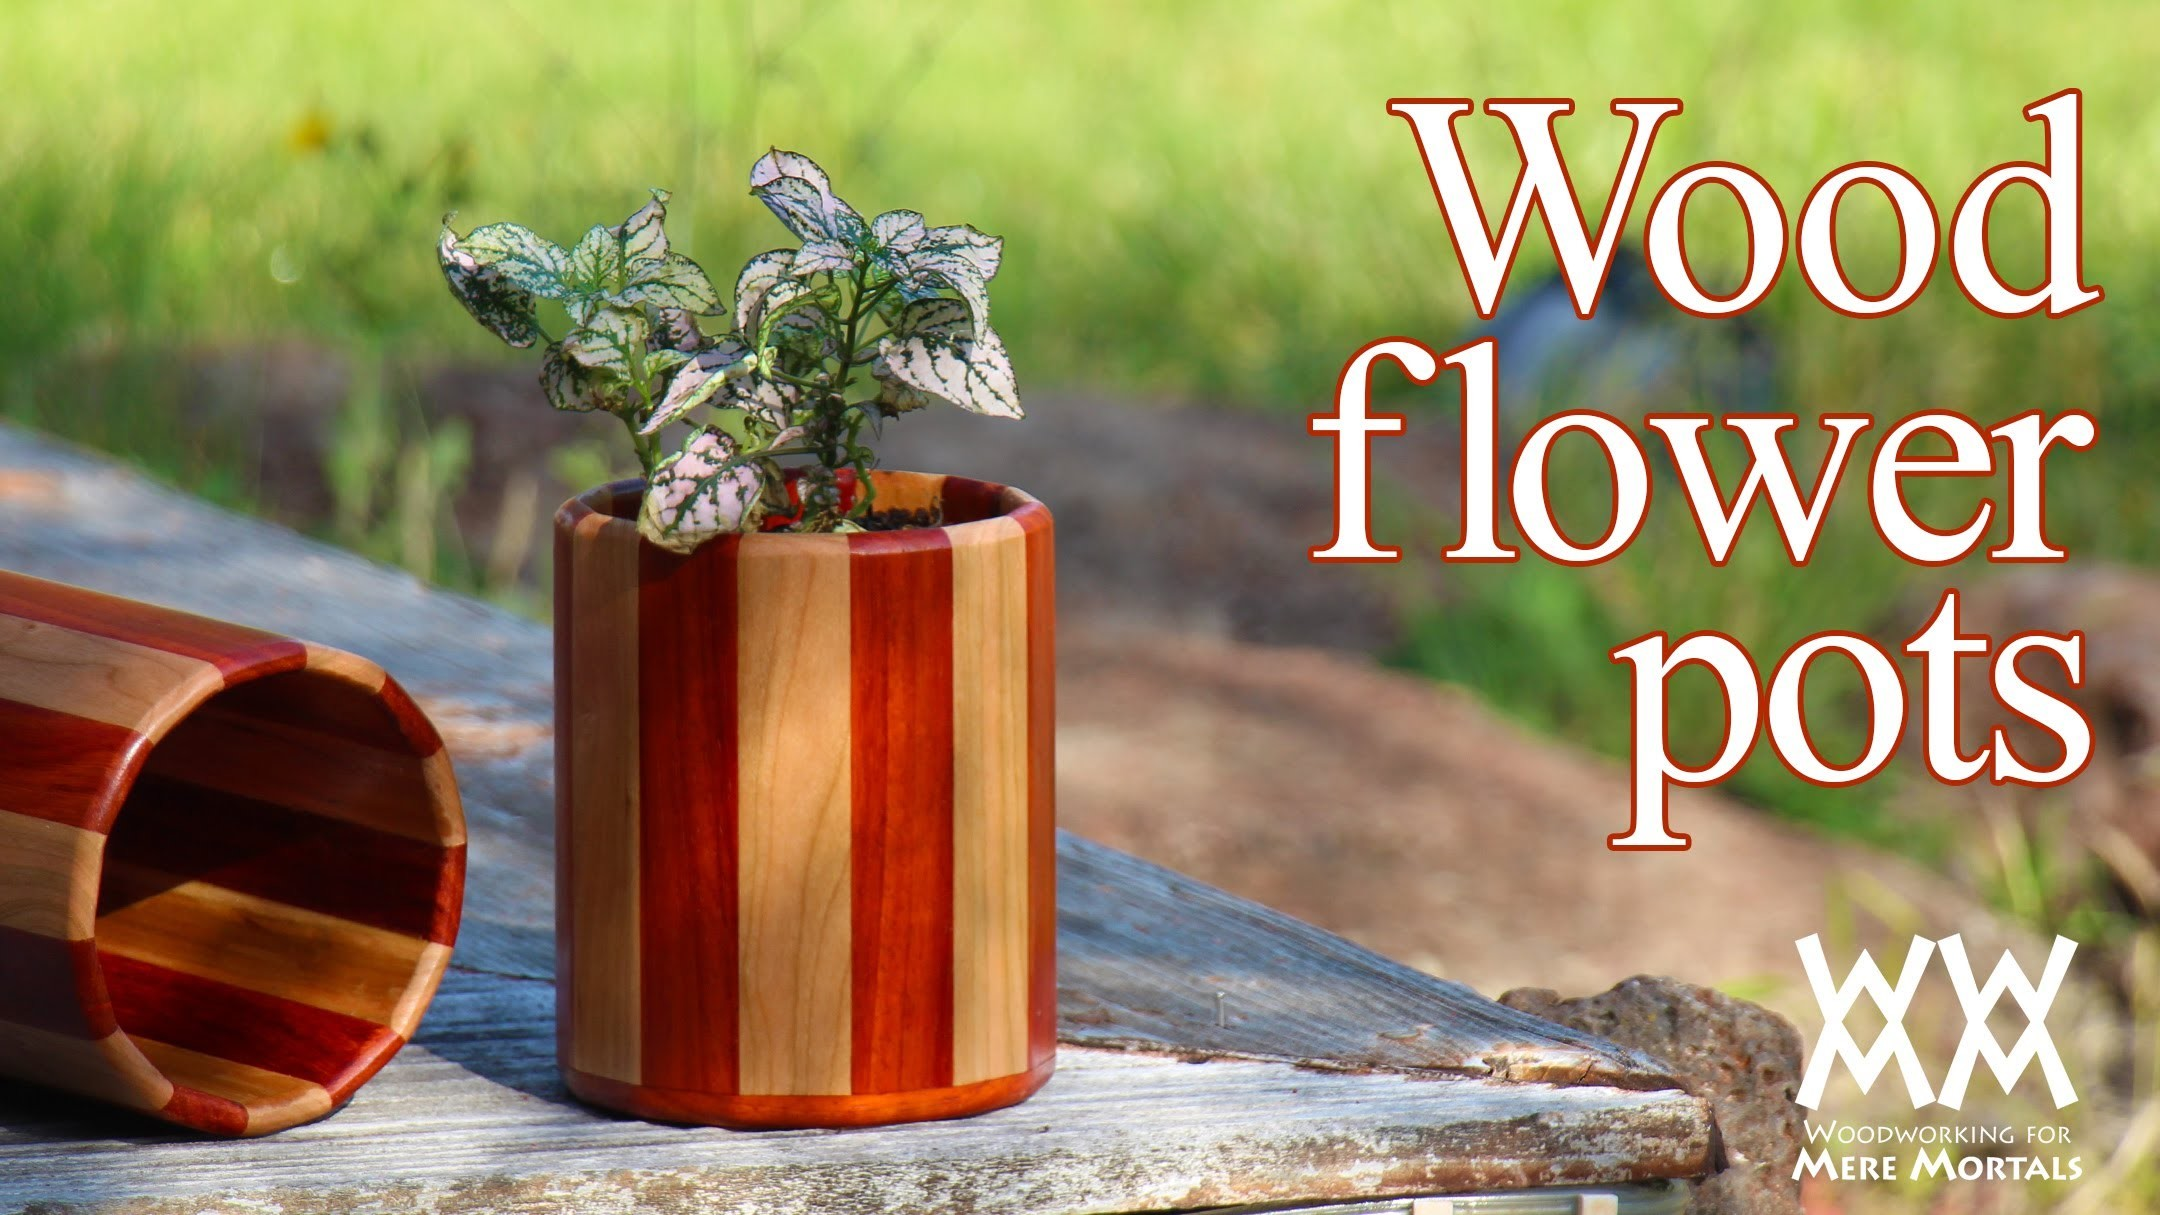 Wood flower pots. Great gift idea!